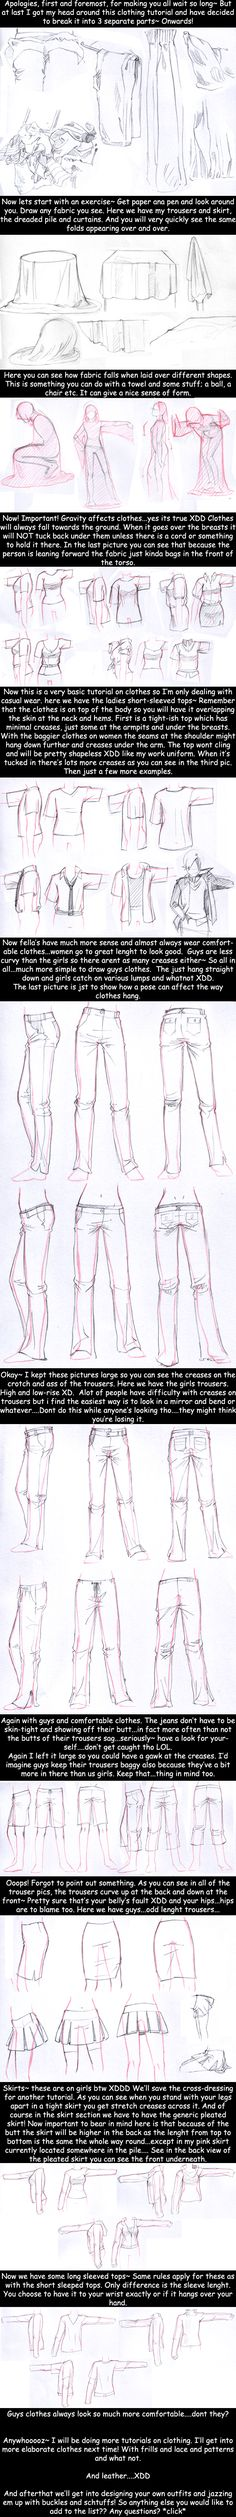 Clothes Tutorial ✤ || CHARACTER DESIGN REFERENCES | Find more at https://www.facebook.com/CharacterDesignReferences if you're looking for: #line #art #character #design #model #sheet #illustration #expressions #best #concept #animation #drawing #archive #library #reference #anatomy #traditional #draw #development #artist #pose #settei #gestures #how #to #tutorial #conceptart #modelsheet #cartoon || ✤